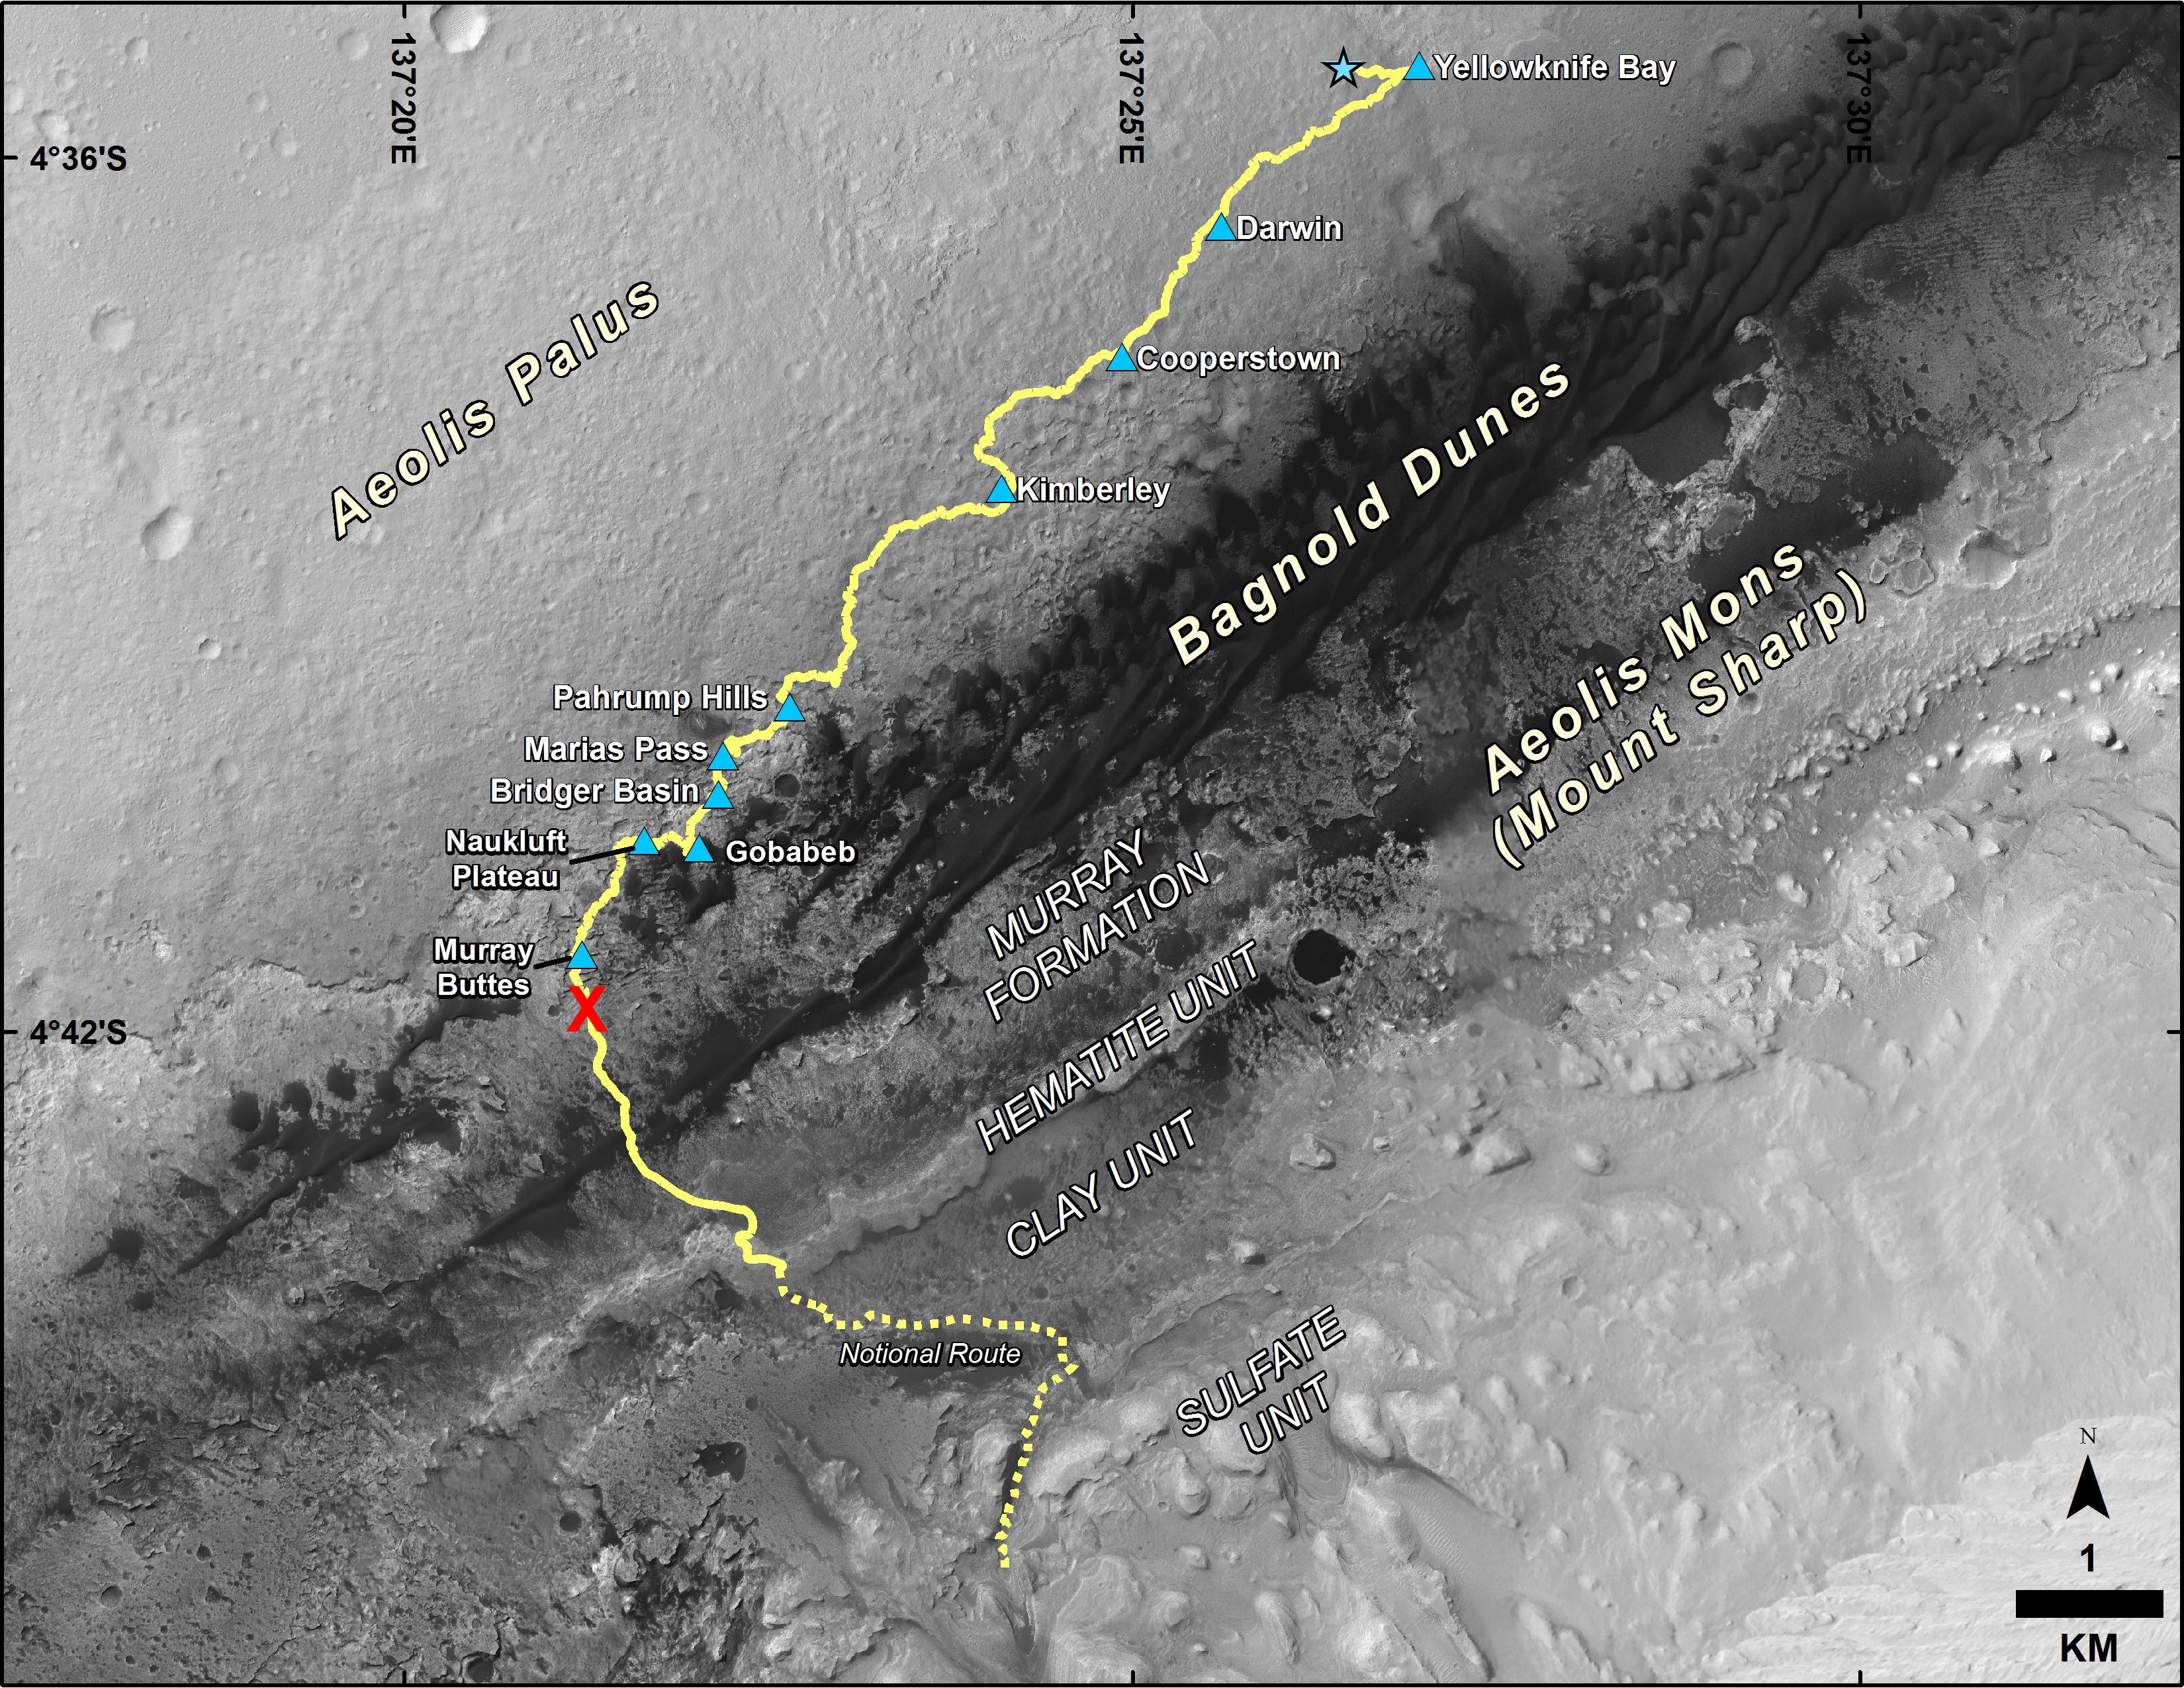 msl-curiosity-mount-sharp-route-traverse-pia20846-full-rens